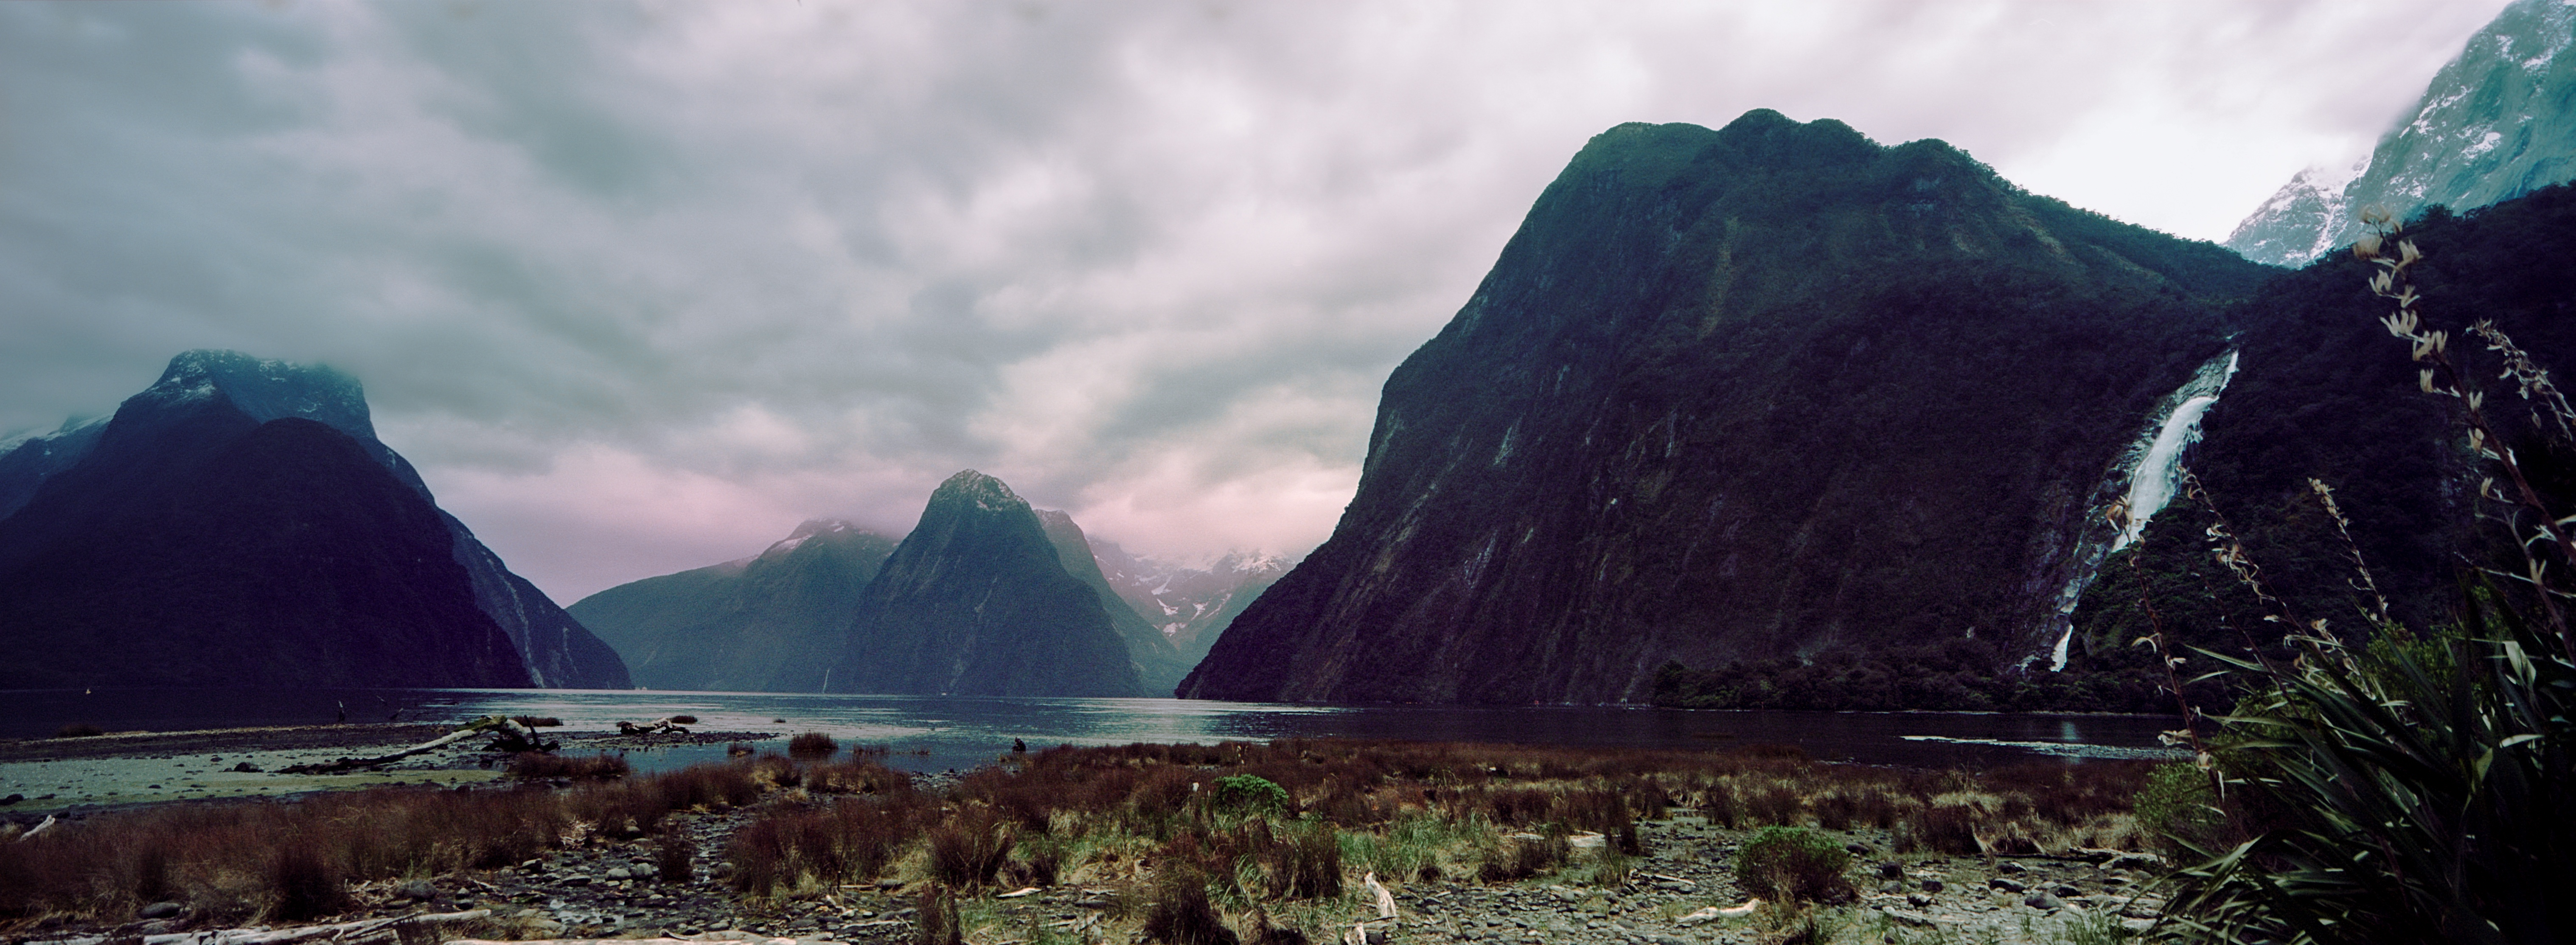 Millford Sound, Fiordland, South Island